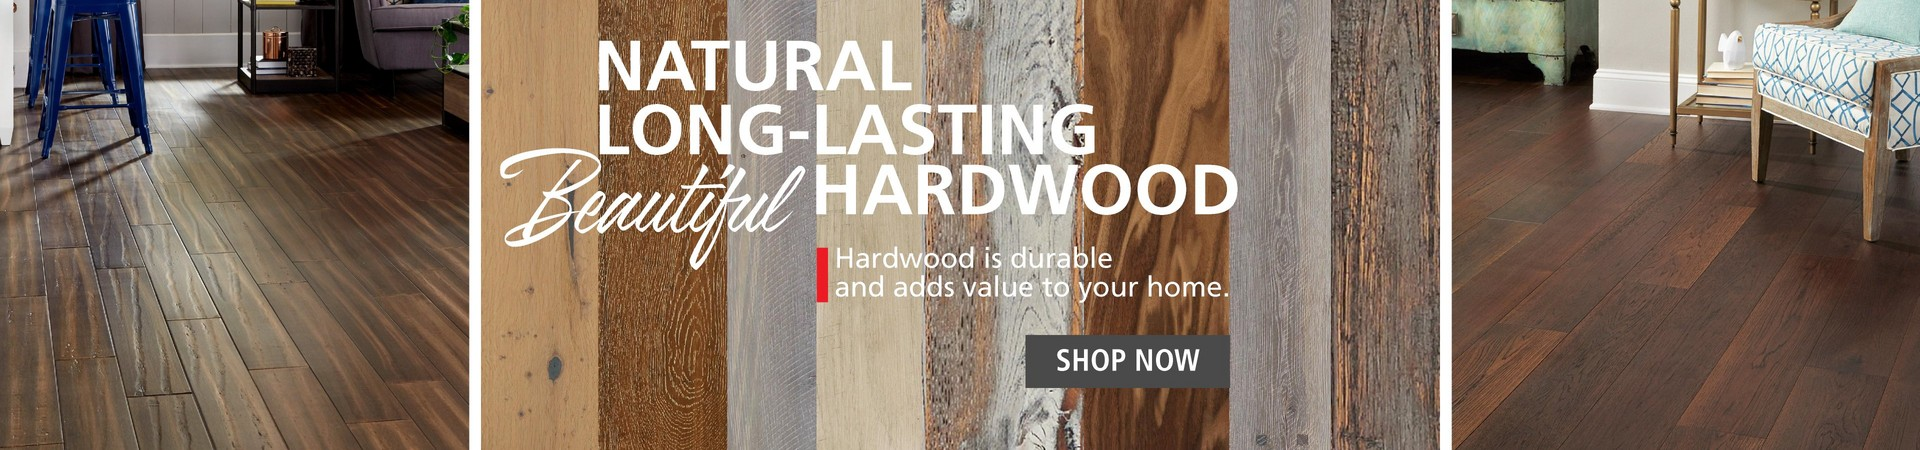 Hardwood is durable and adds value to your home.